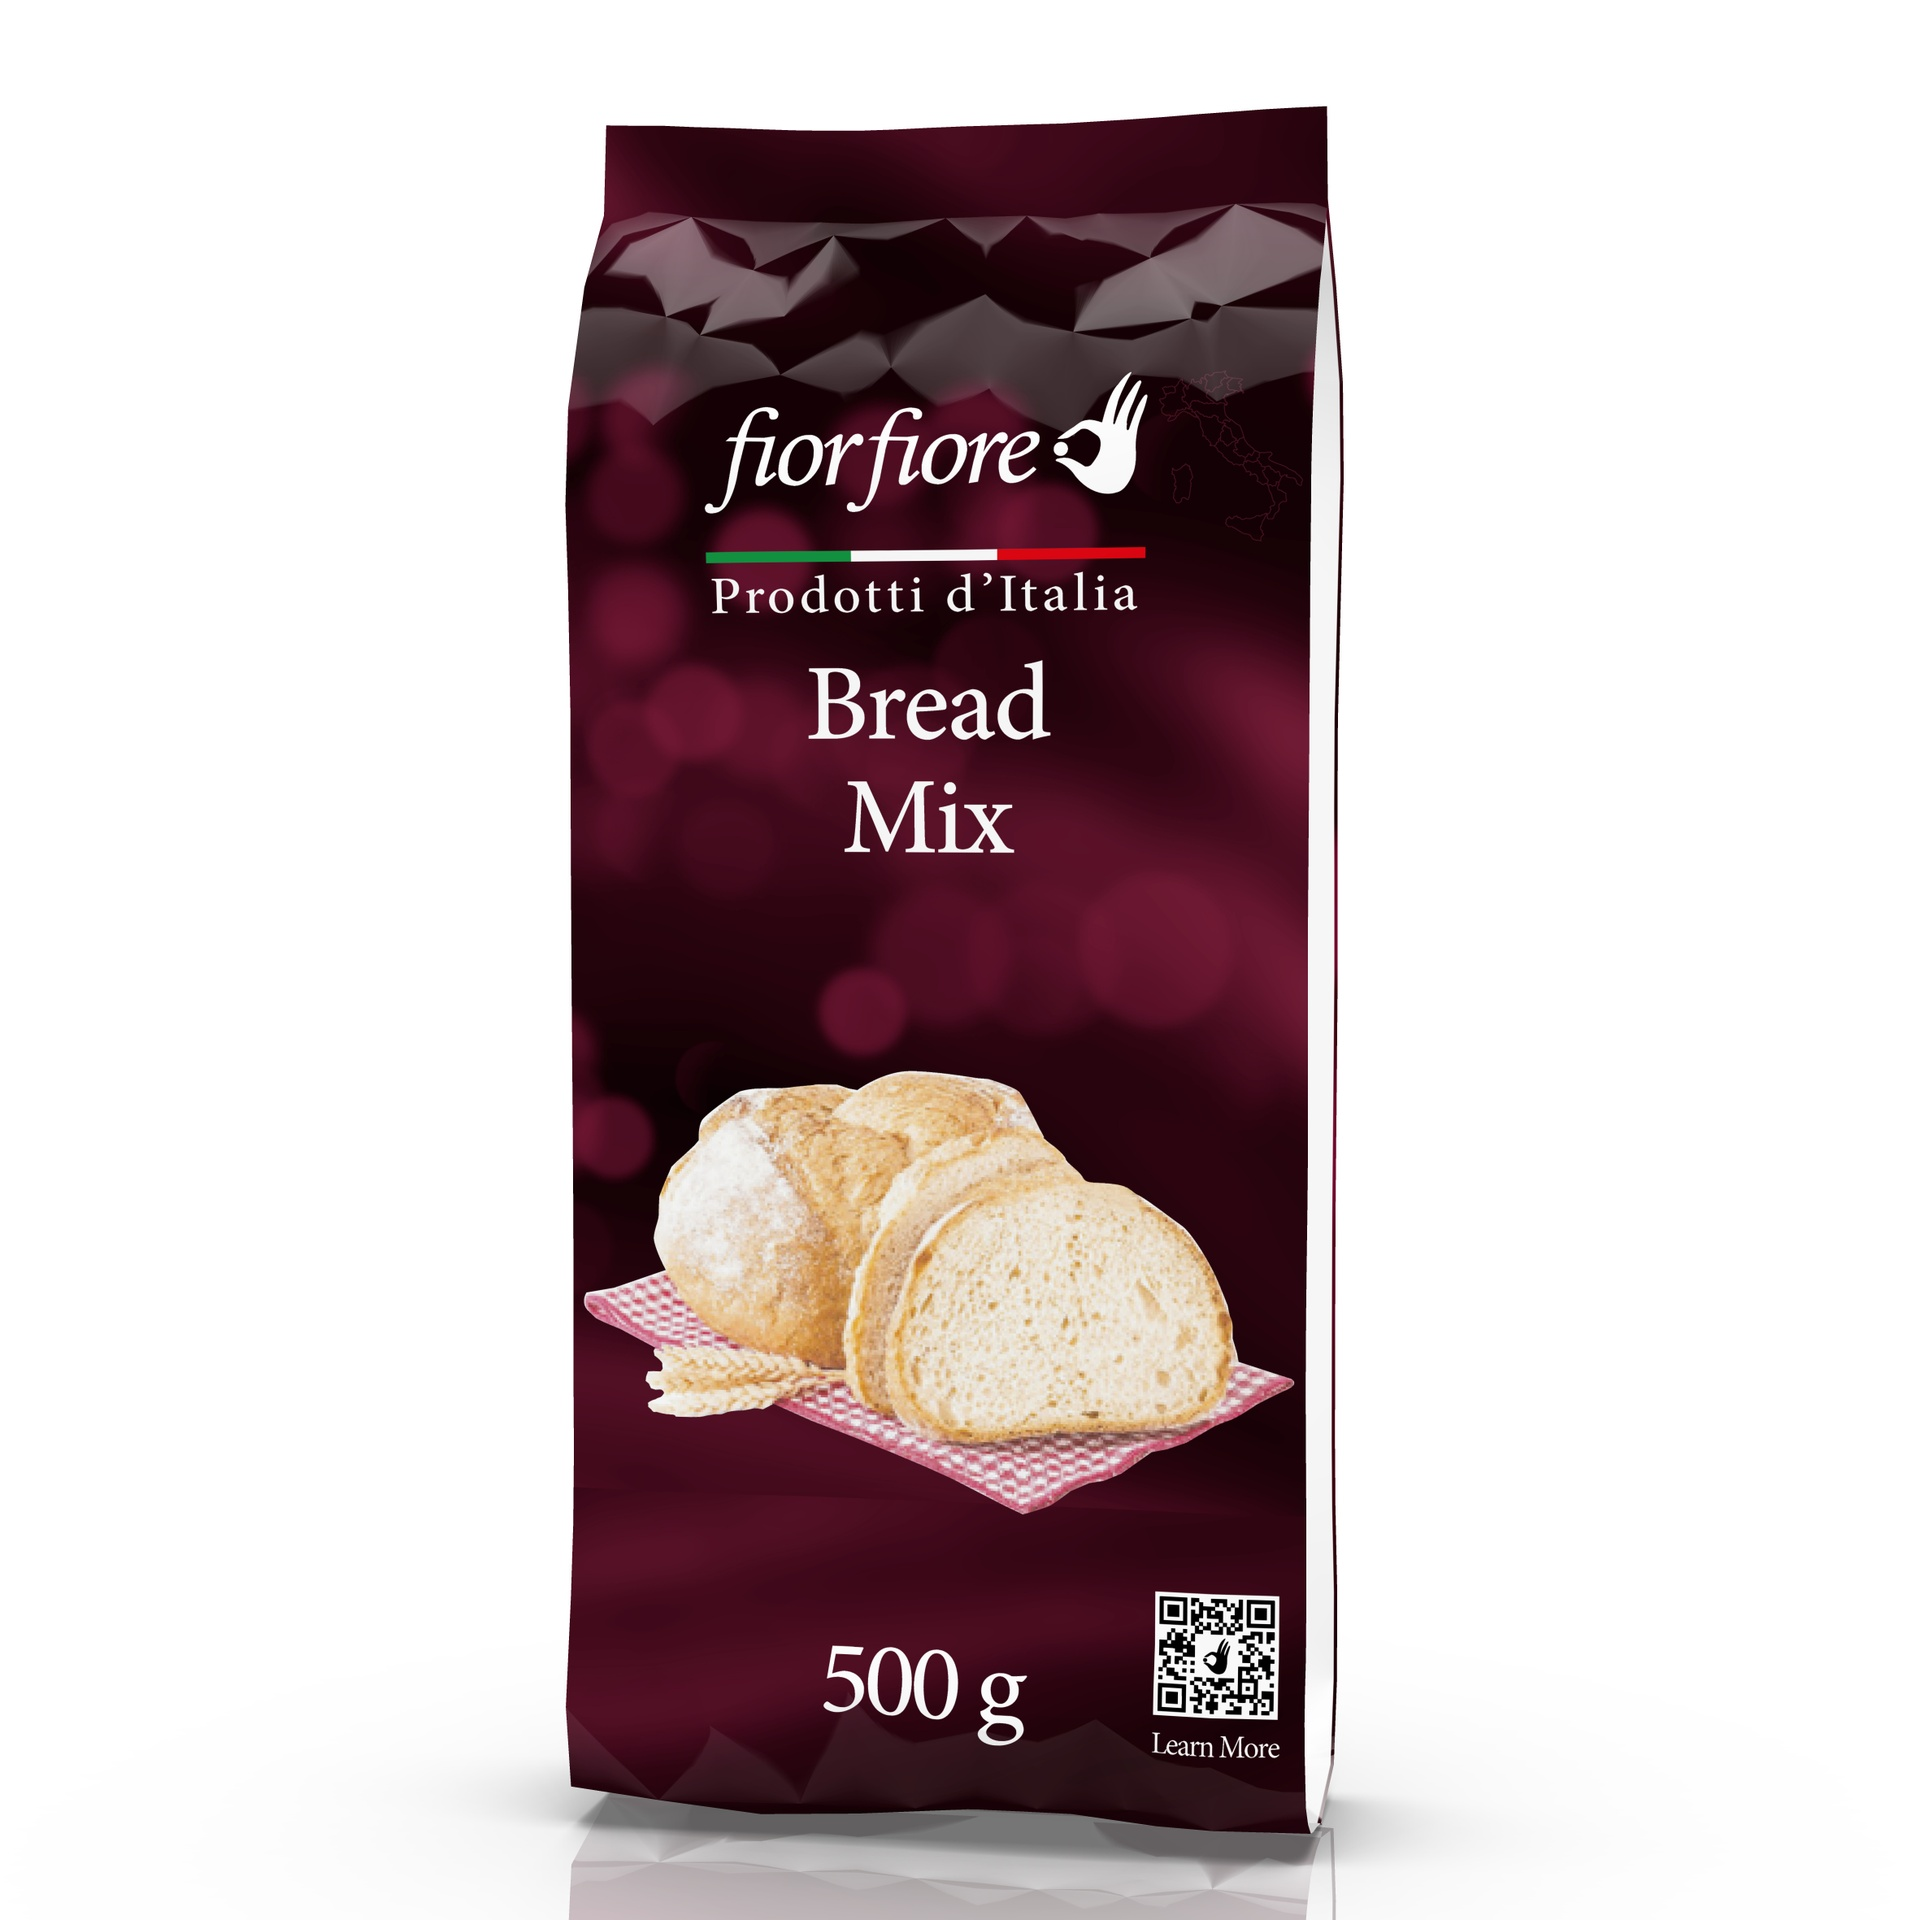 Bread Mix 500 g (17.5 OZ)